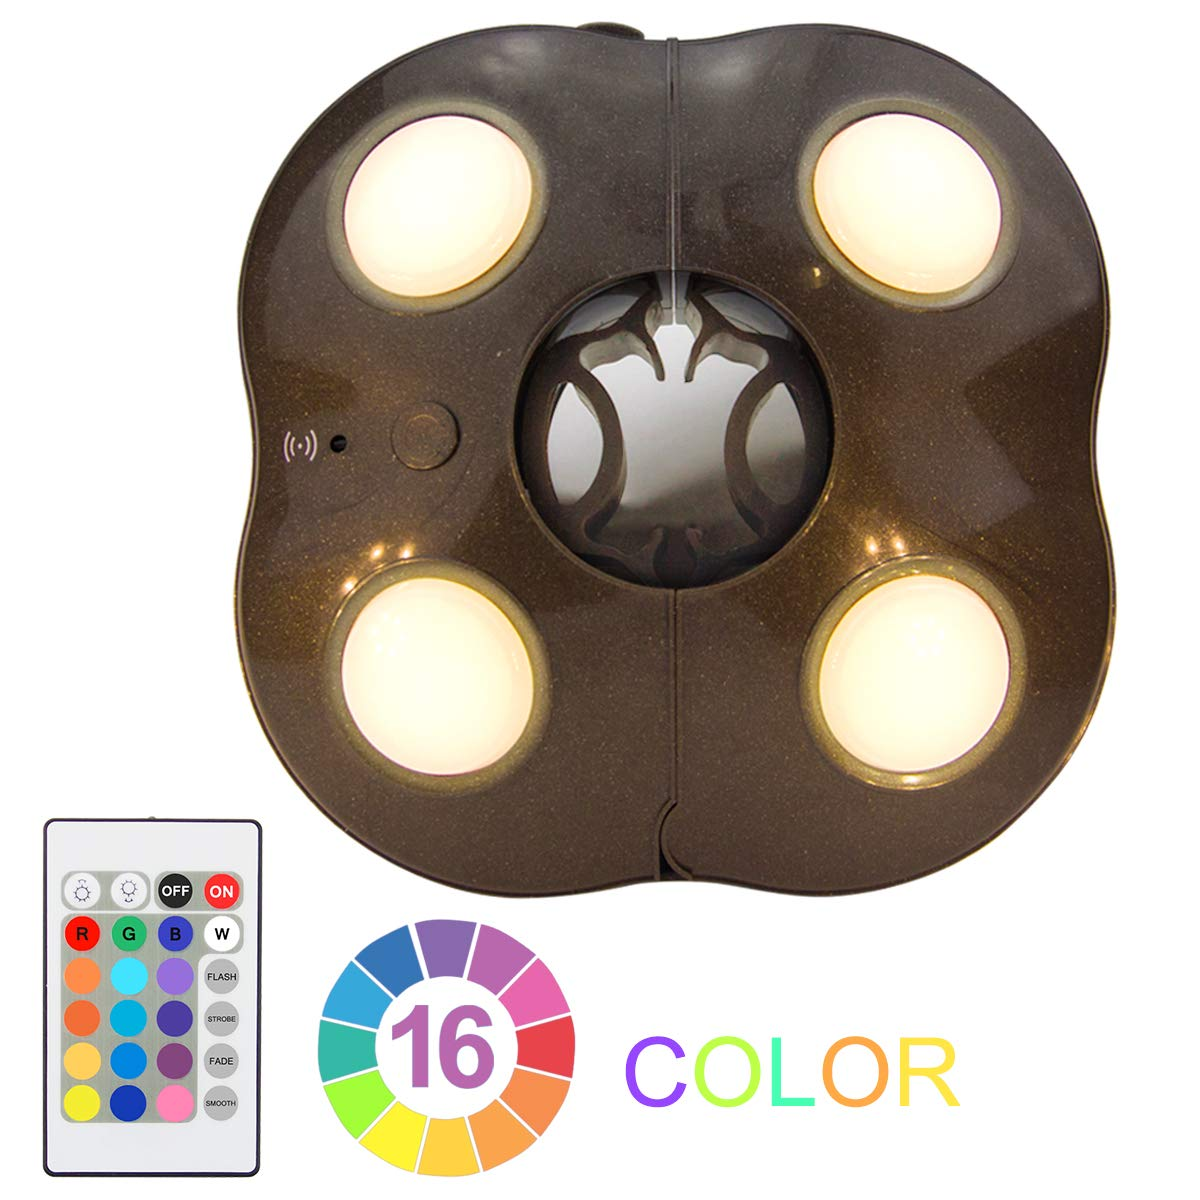 Umbrella Lights LUXSWAY Super Bright Patio Night Light 4 Modes 16 Colors Battery Operated Remote Control Camping Tent Lighting Light by LUXSWAY